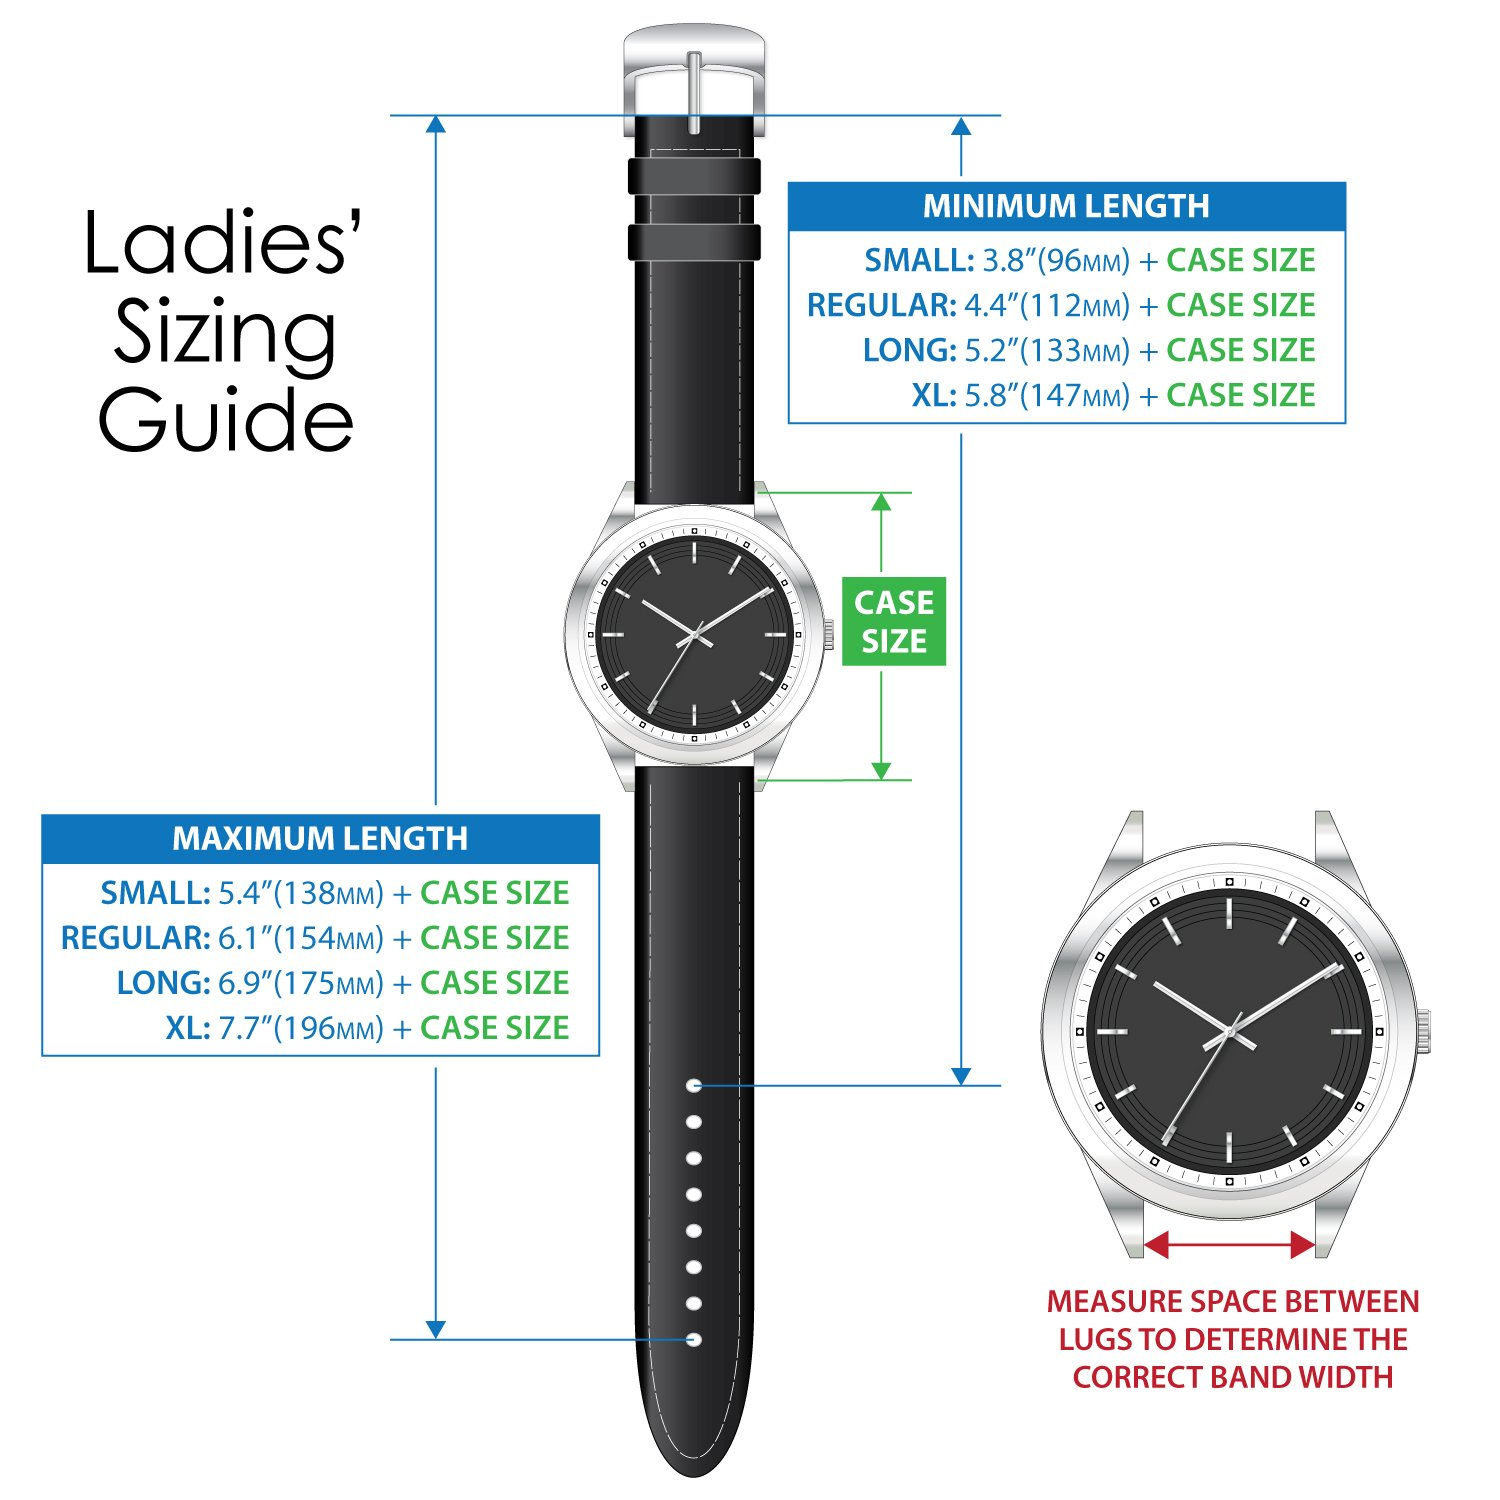 Speidel Genuine Leather Alligator Grain Watch Band 11mm Long Brown Replacement Strap, Stainless Steel Metal Buckle Clasp, Watchband Fits Most Watch Brands by Speidel (Image #4)